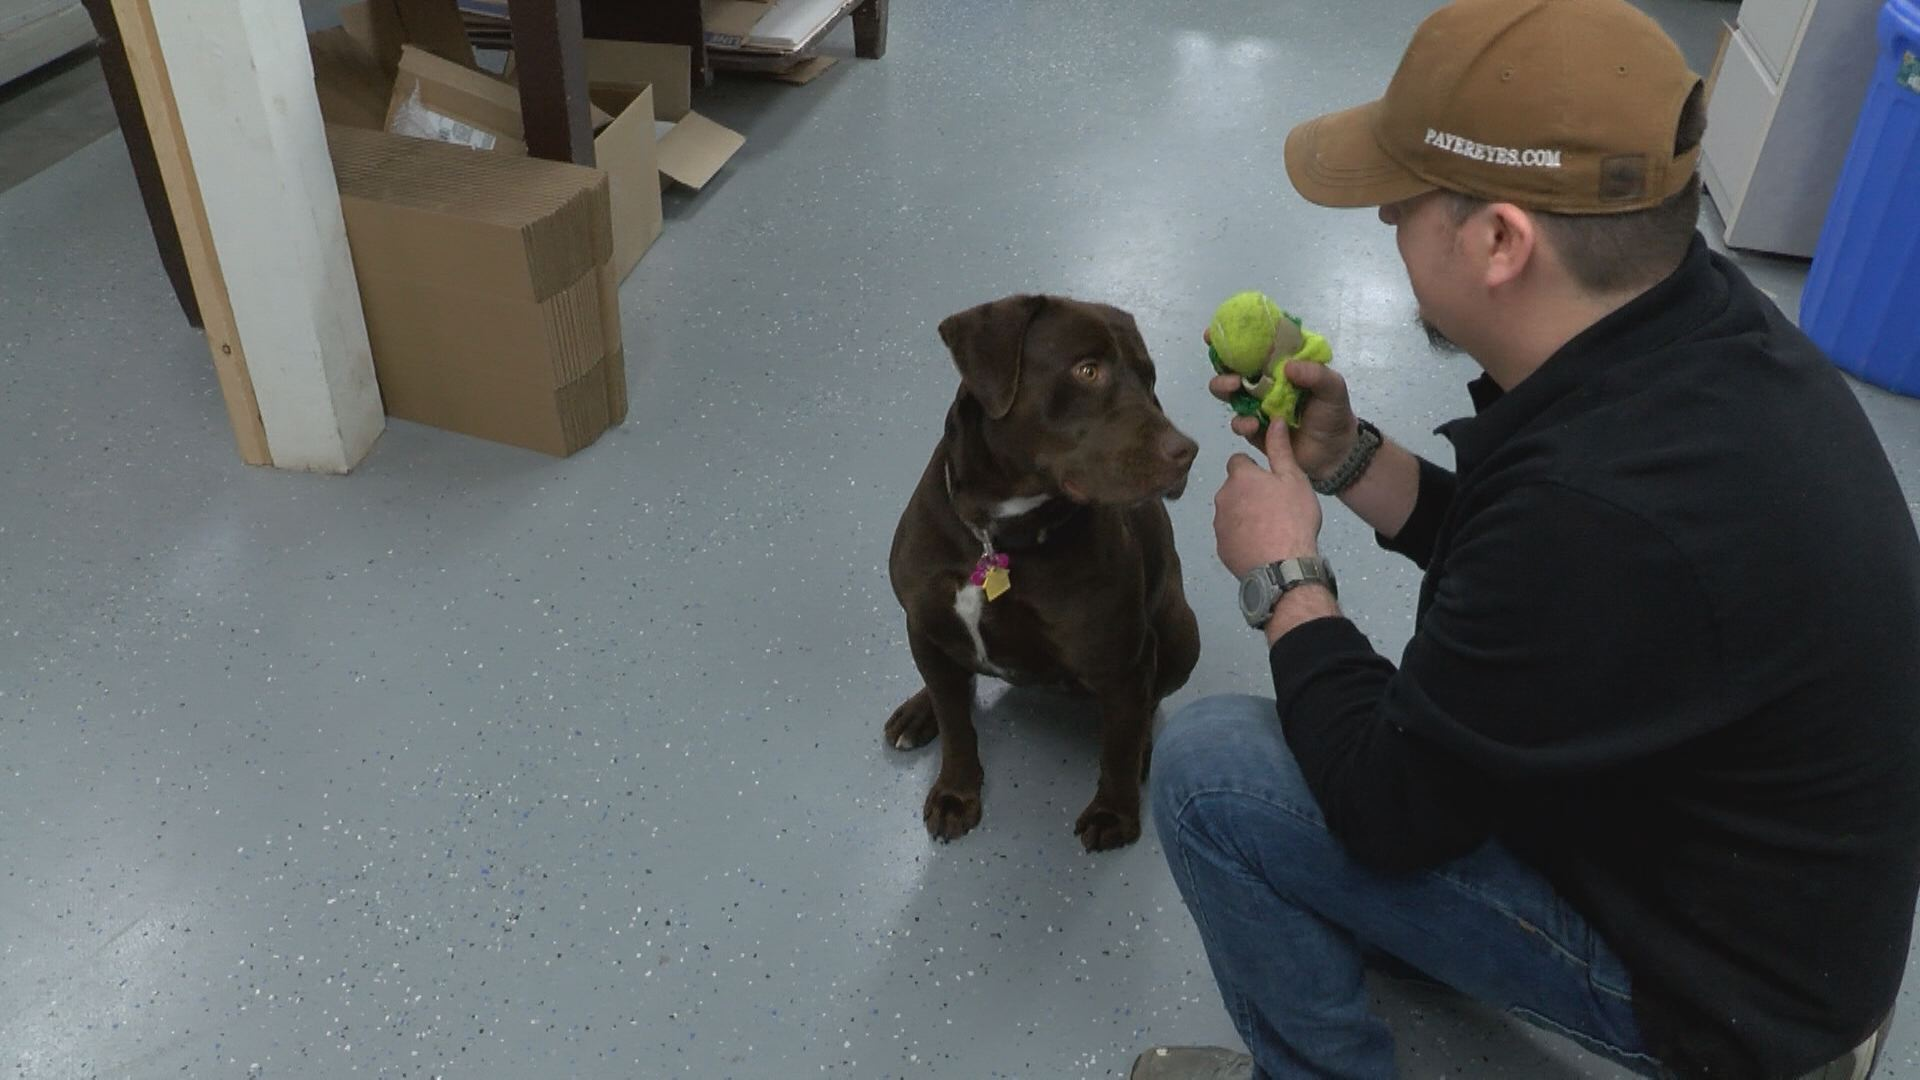 Rosie plays with her owner, Poe Noonkester, at his workplace in Abingdon. (Thomas Gray/WCYB)